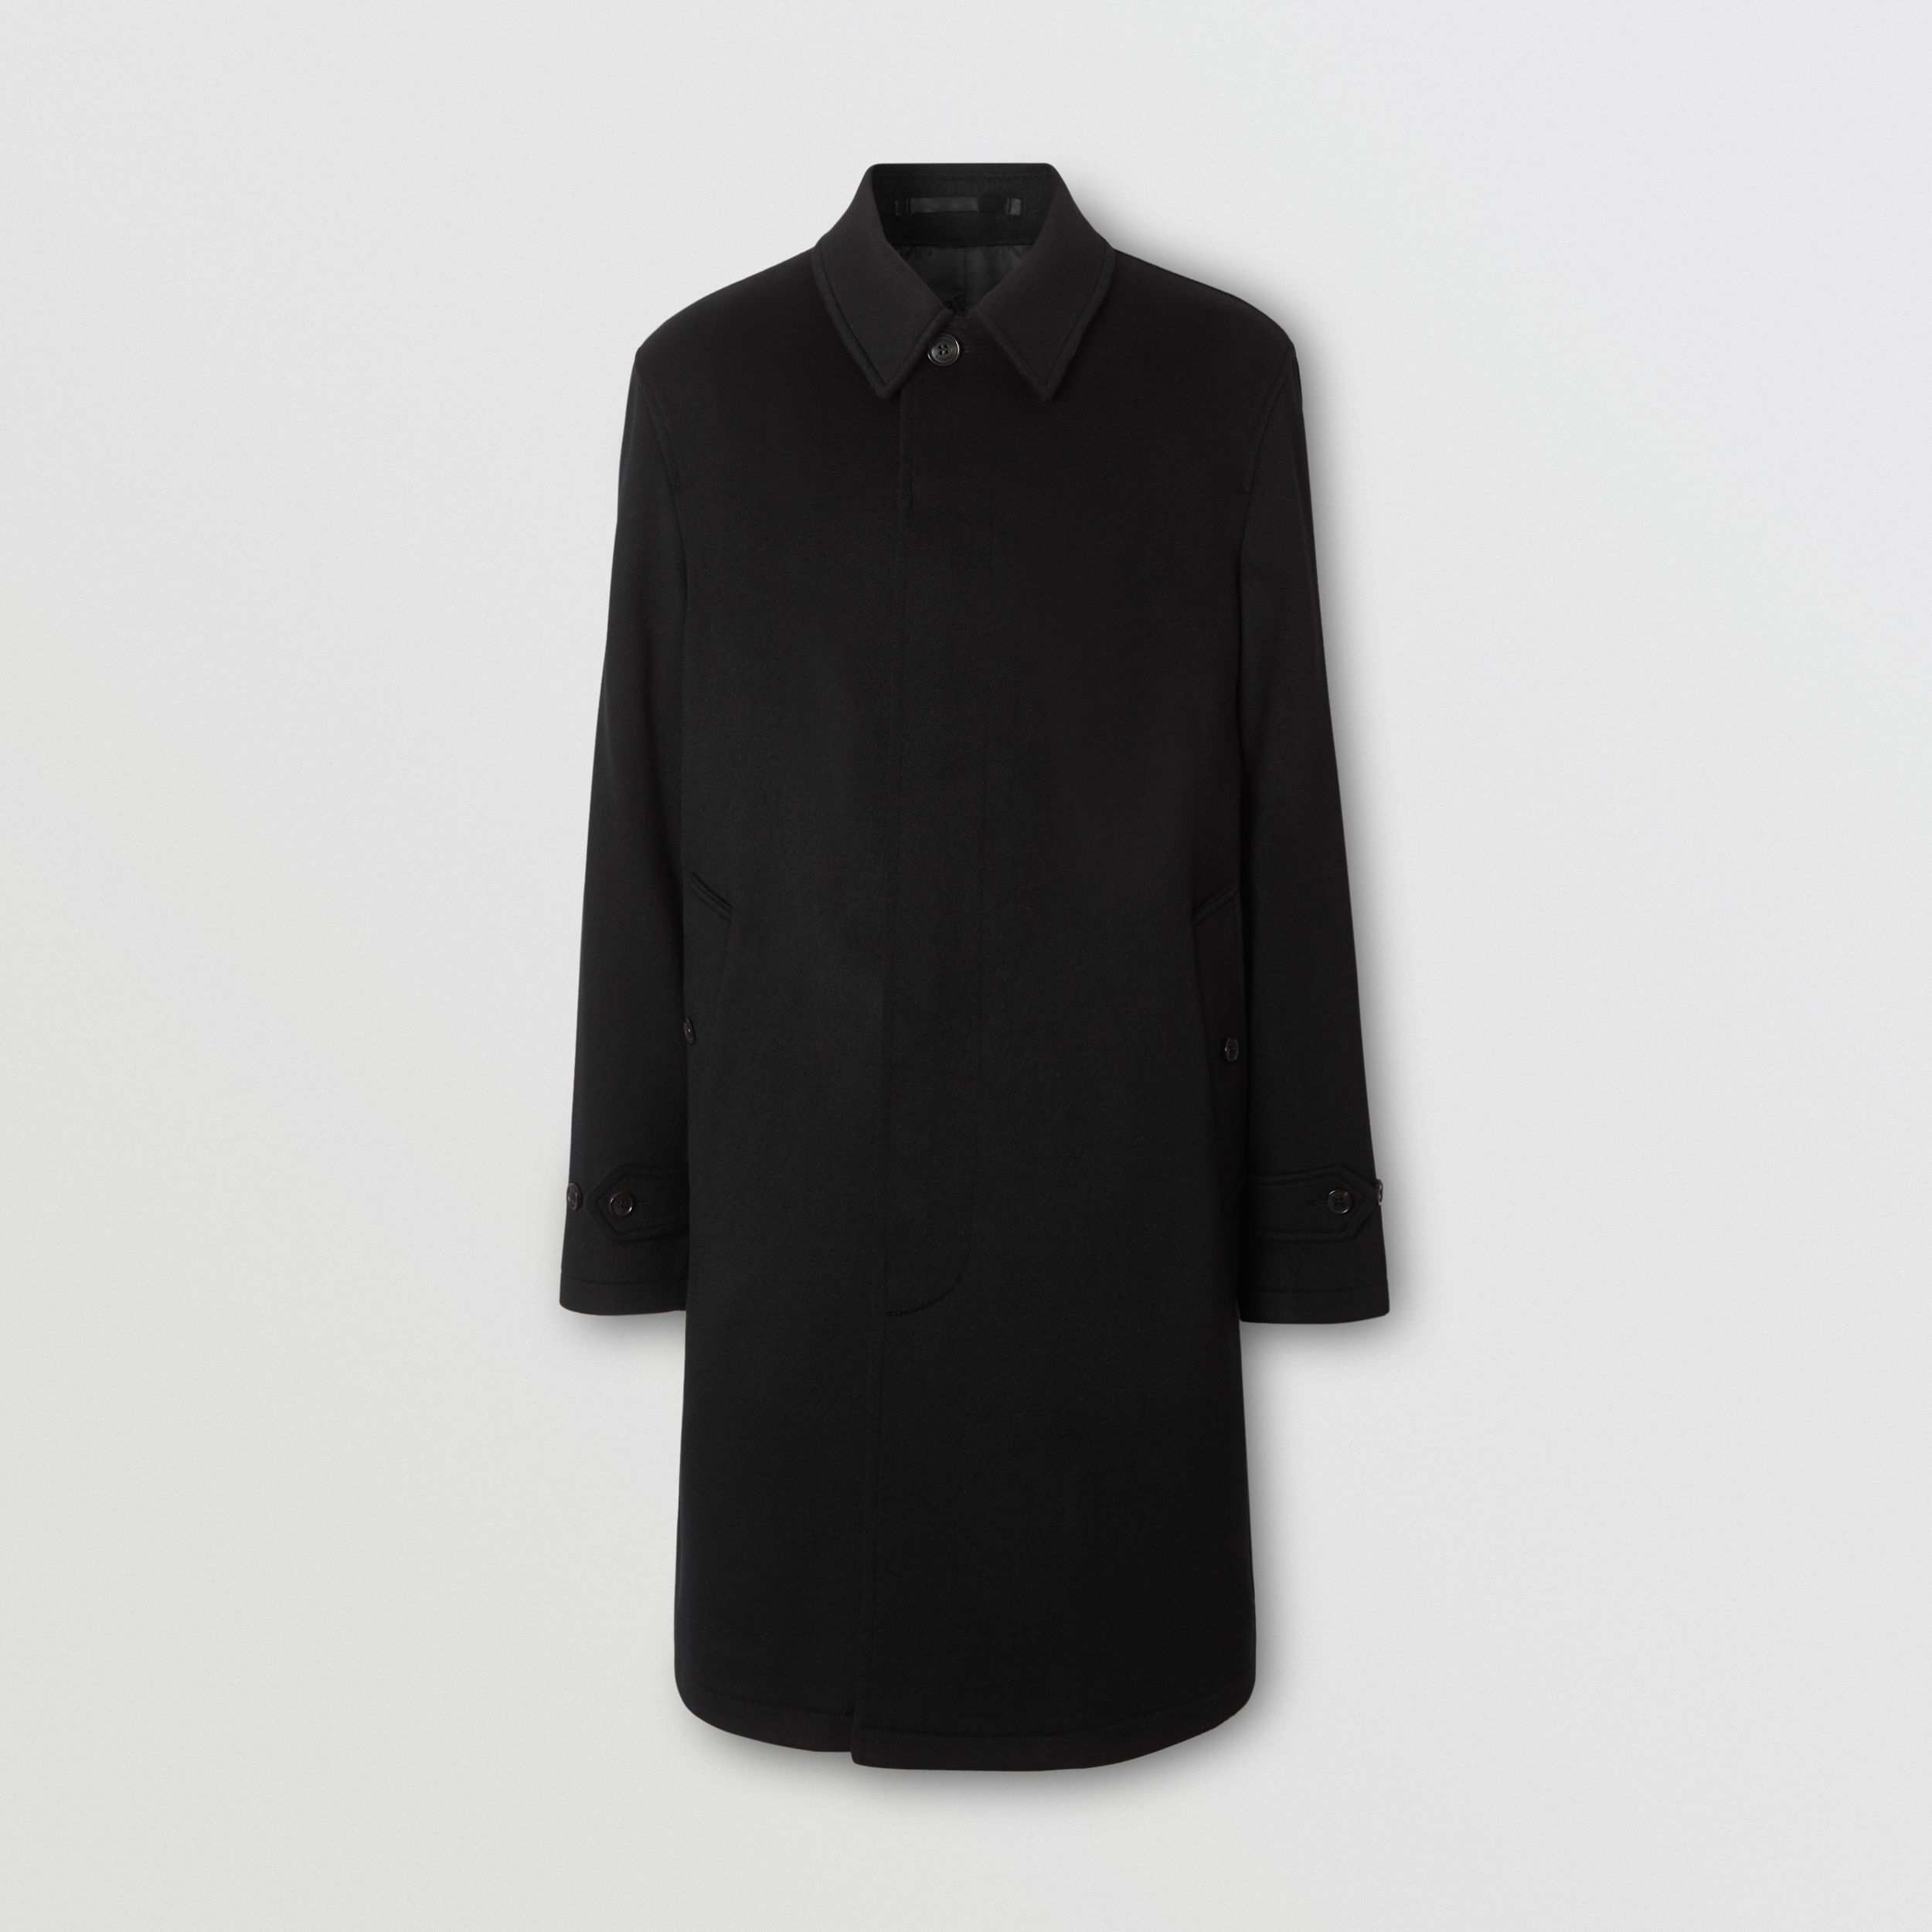 Cashmere Car Coat in Black - Men | Burberry - 4